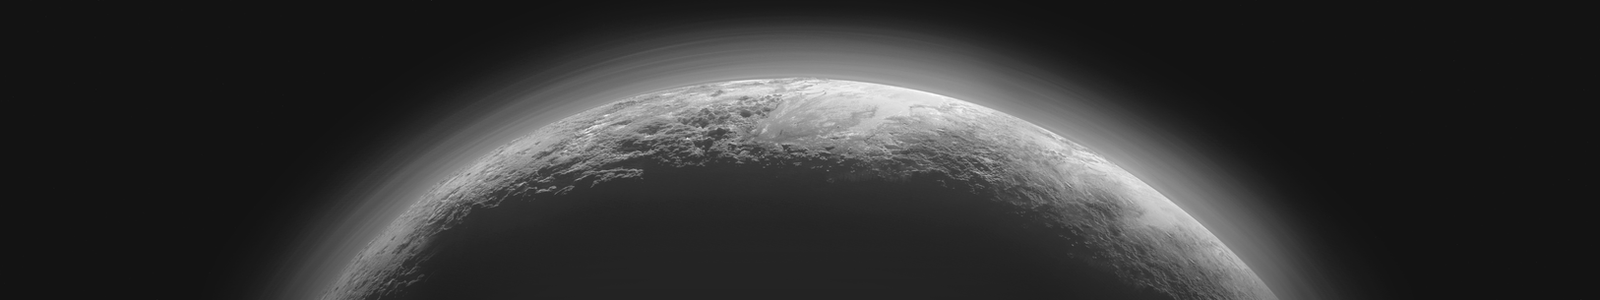 Pluto Wallpaper Wallpaper - Pluto 2 by...